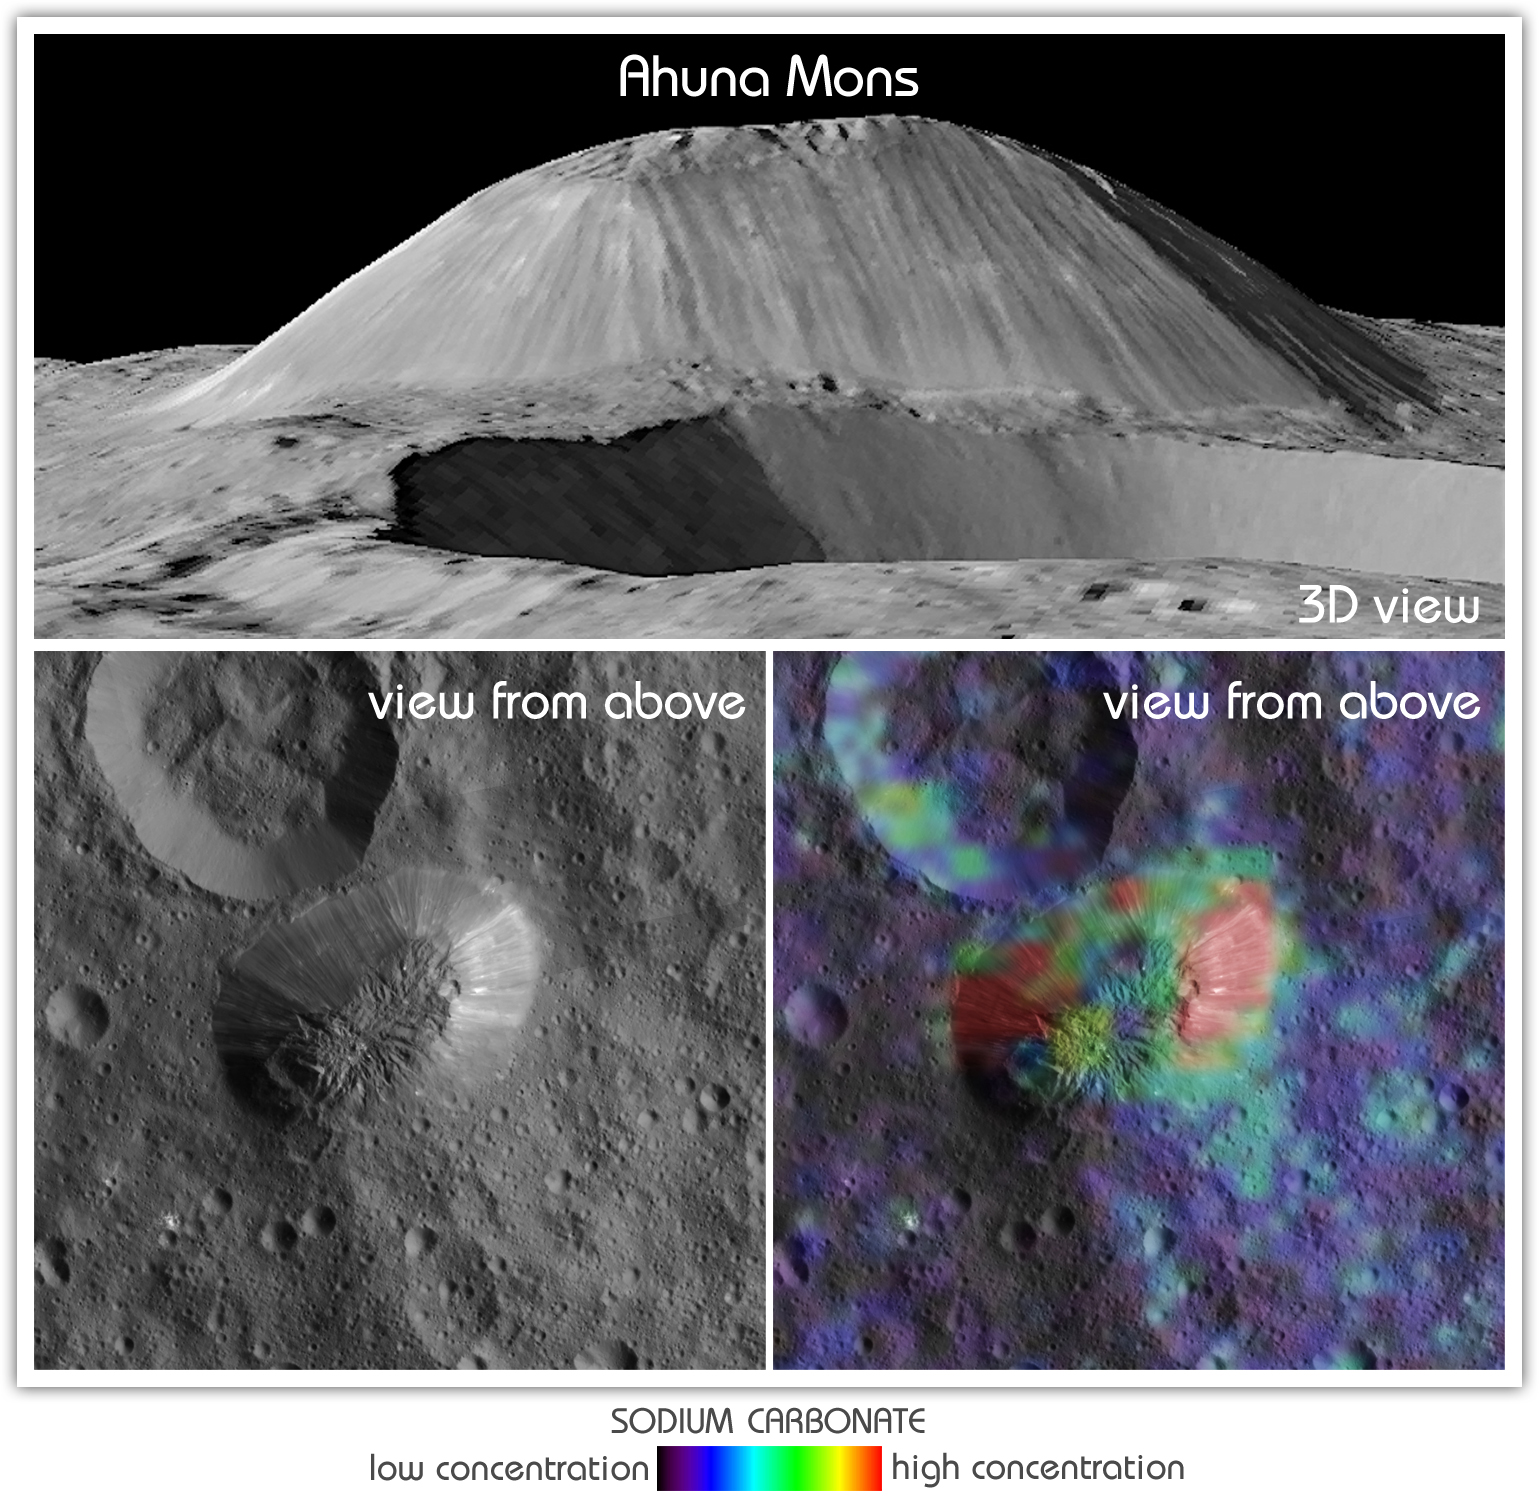 Ceres' tallest mountain, Ahuna Mons